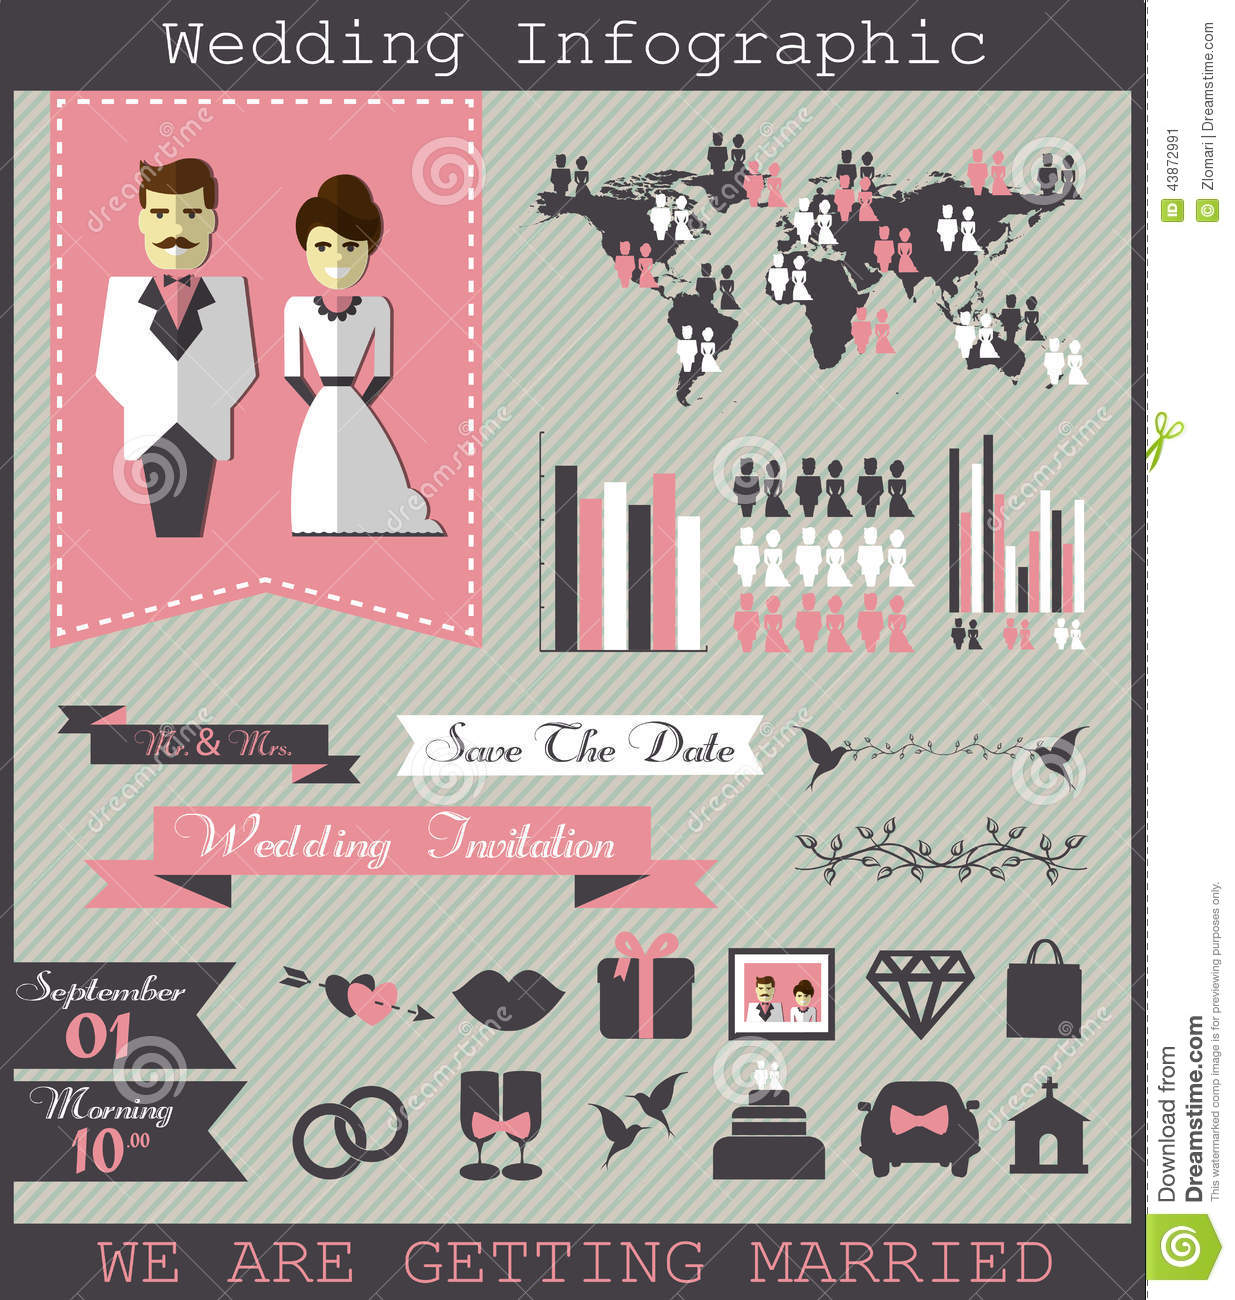 Infographic for Wedding Grooms